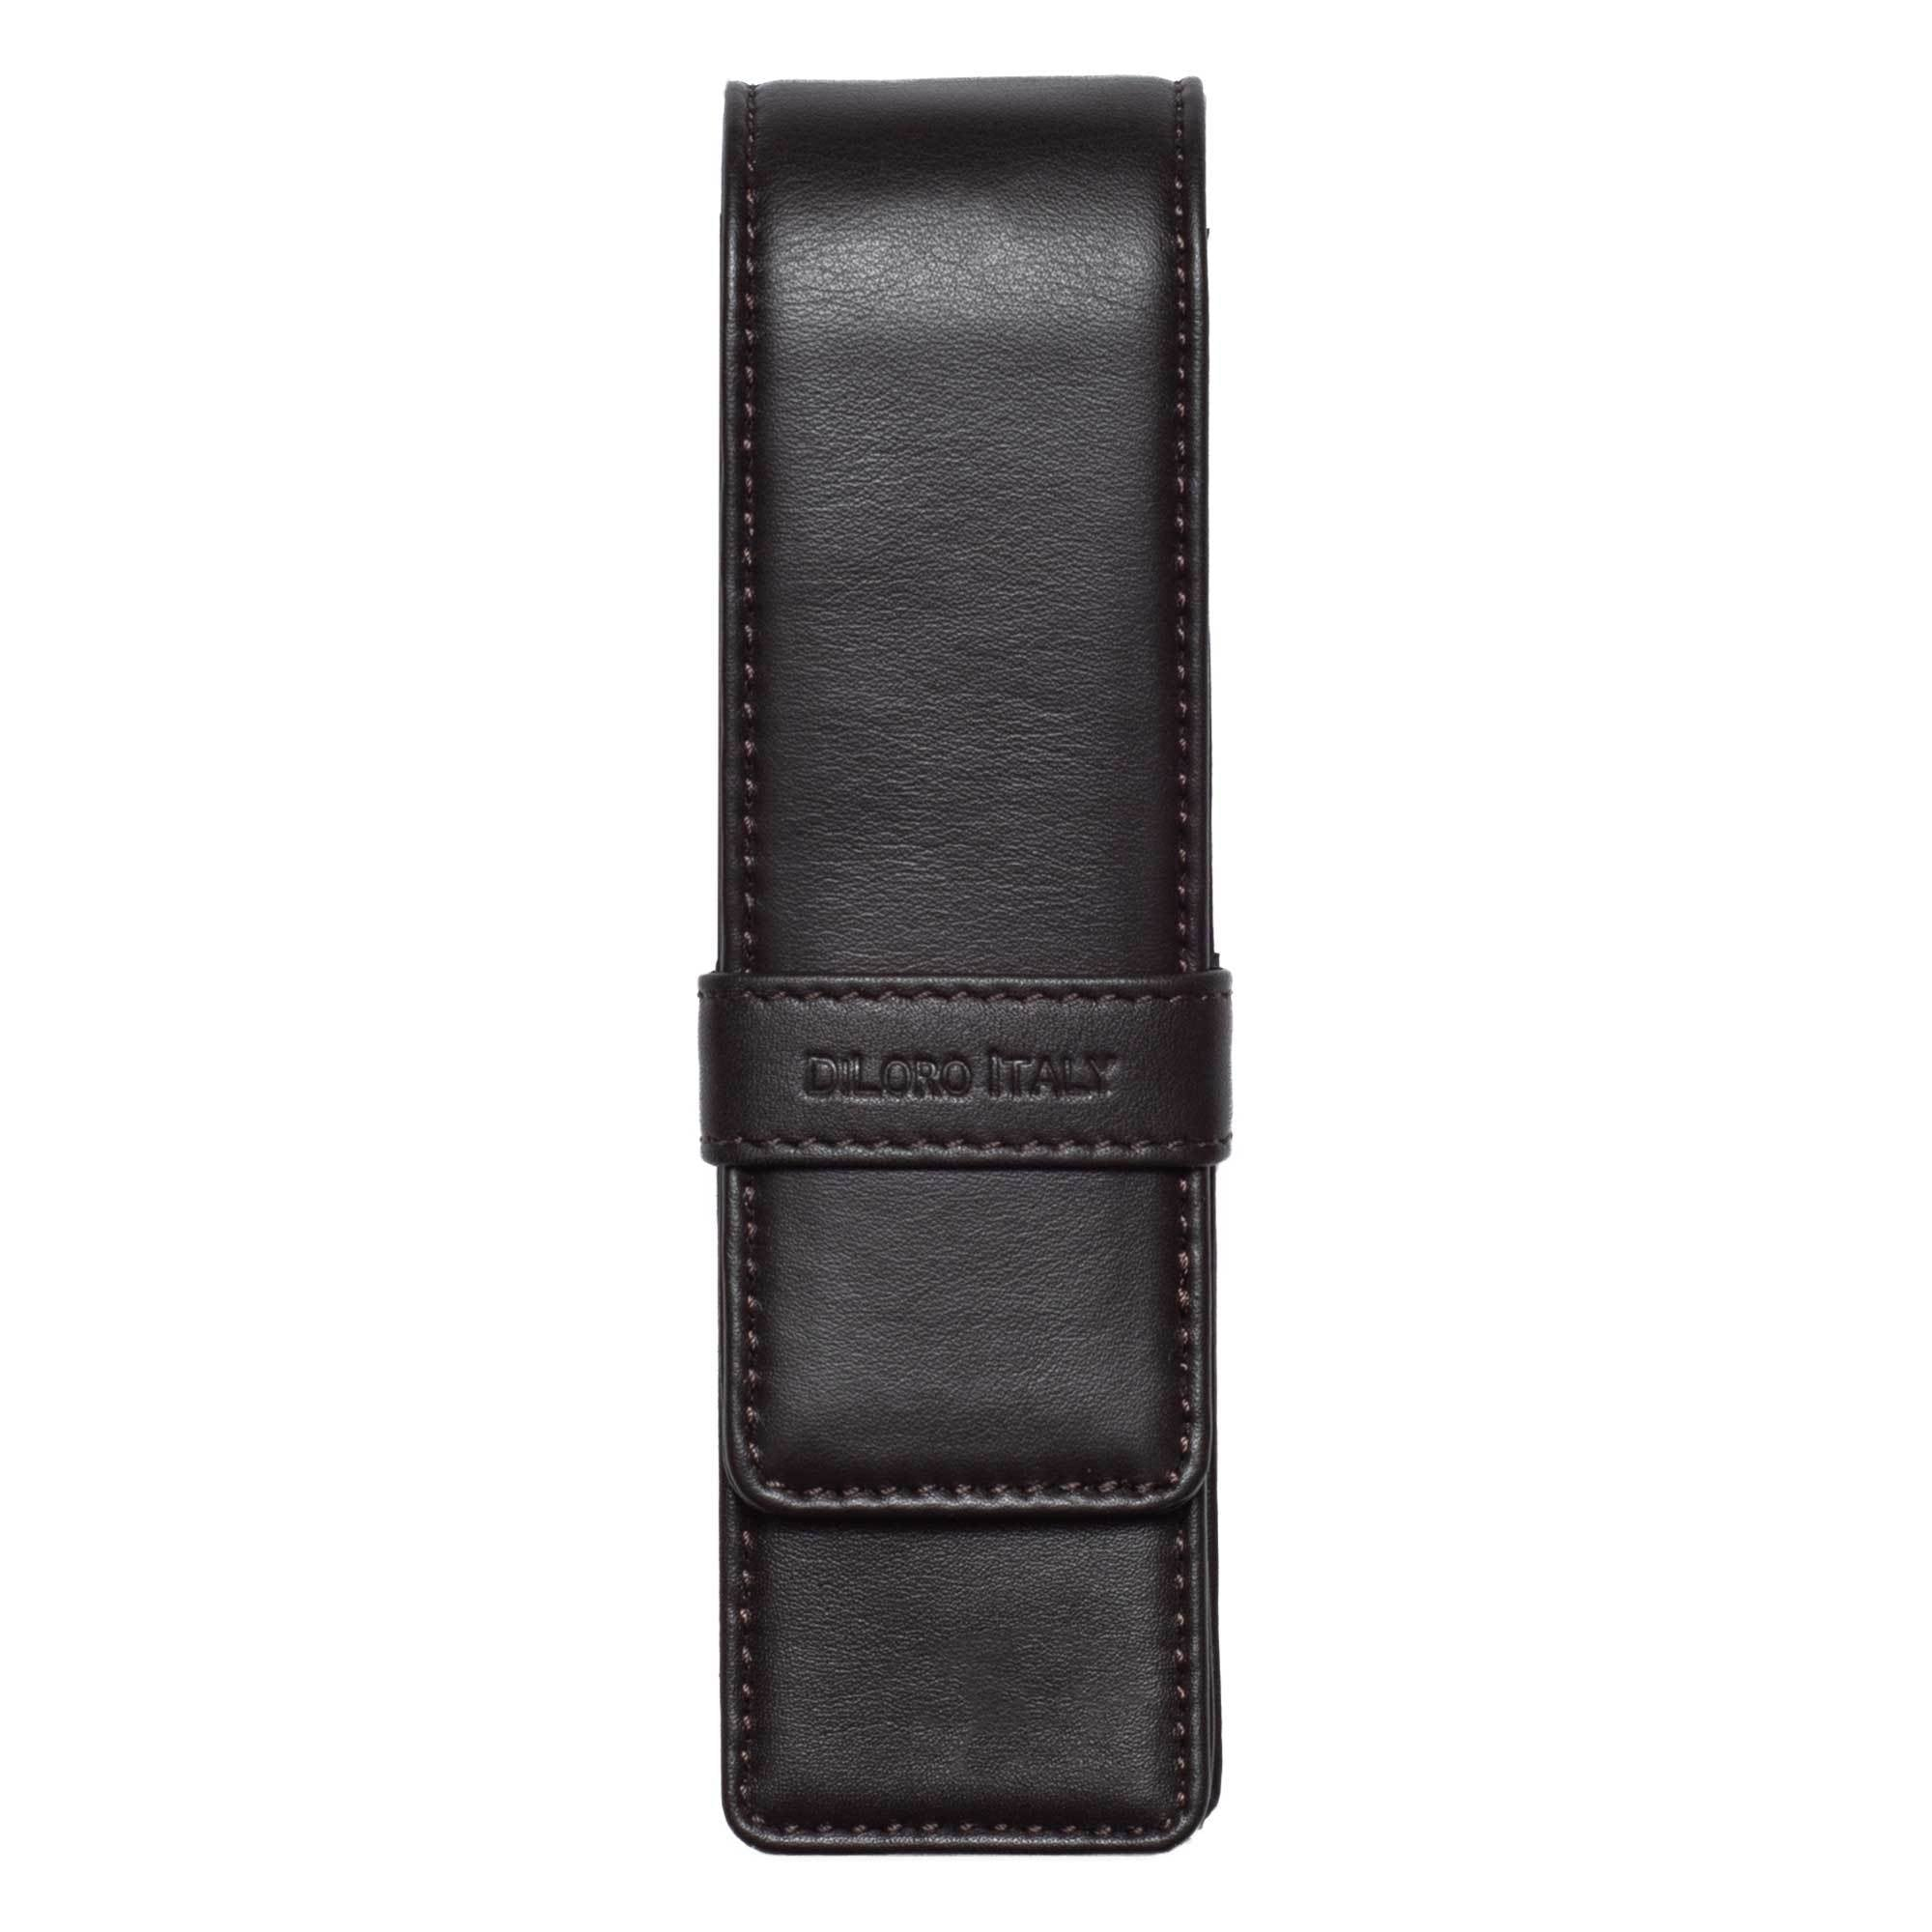 DiLoro Double Pen Case Holder in Top Quality, Full Grain Nappa Leather - Dark Brown Front View